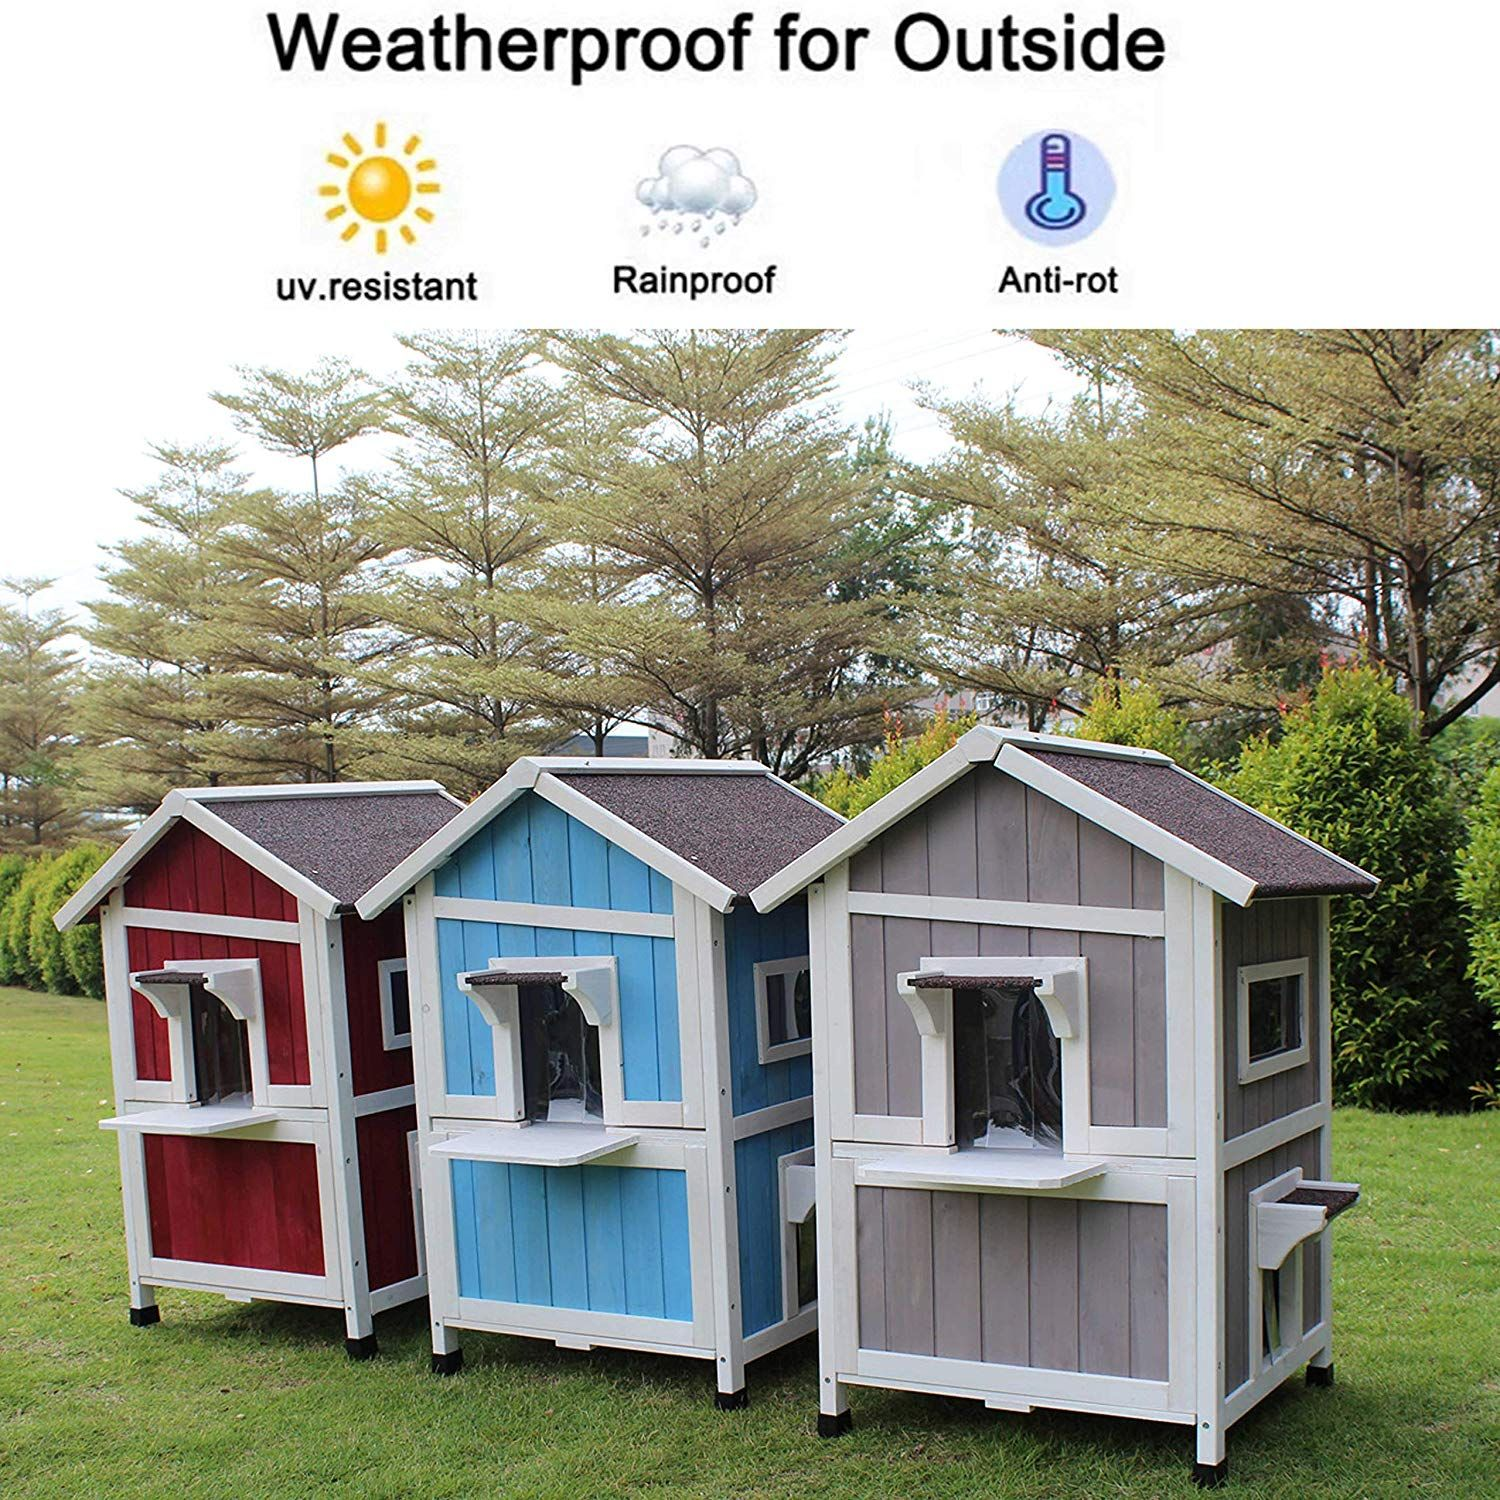 Rockever Outdoor Cat Shelter With Escape Door Rainproof Outside Kitty House Outdoor Cat House Outdoor Cat Shelter Outside Cat House